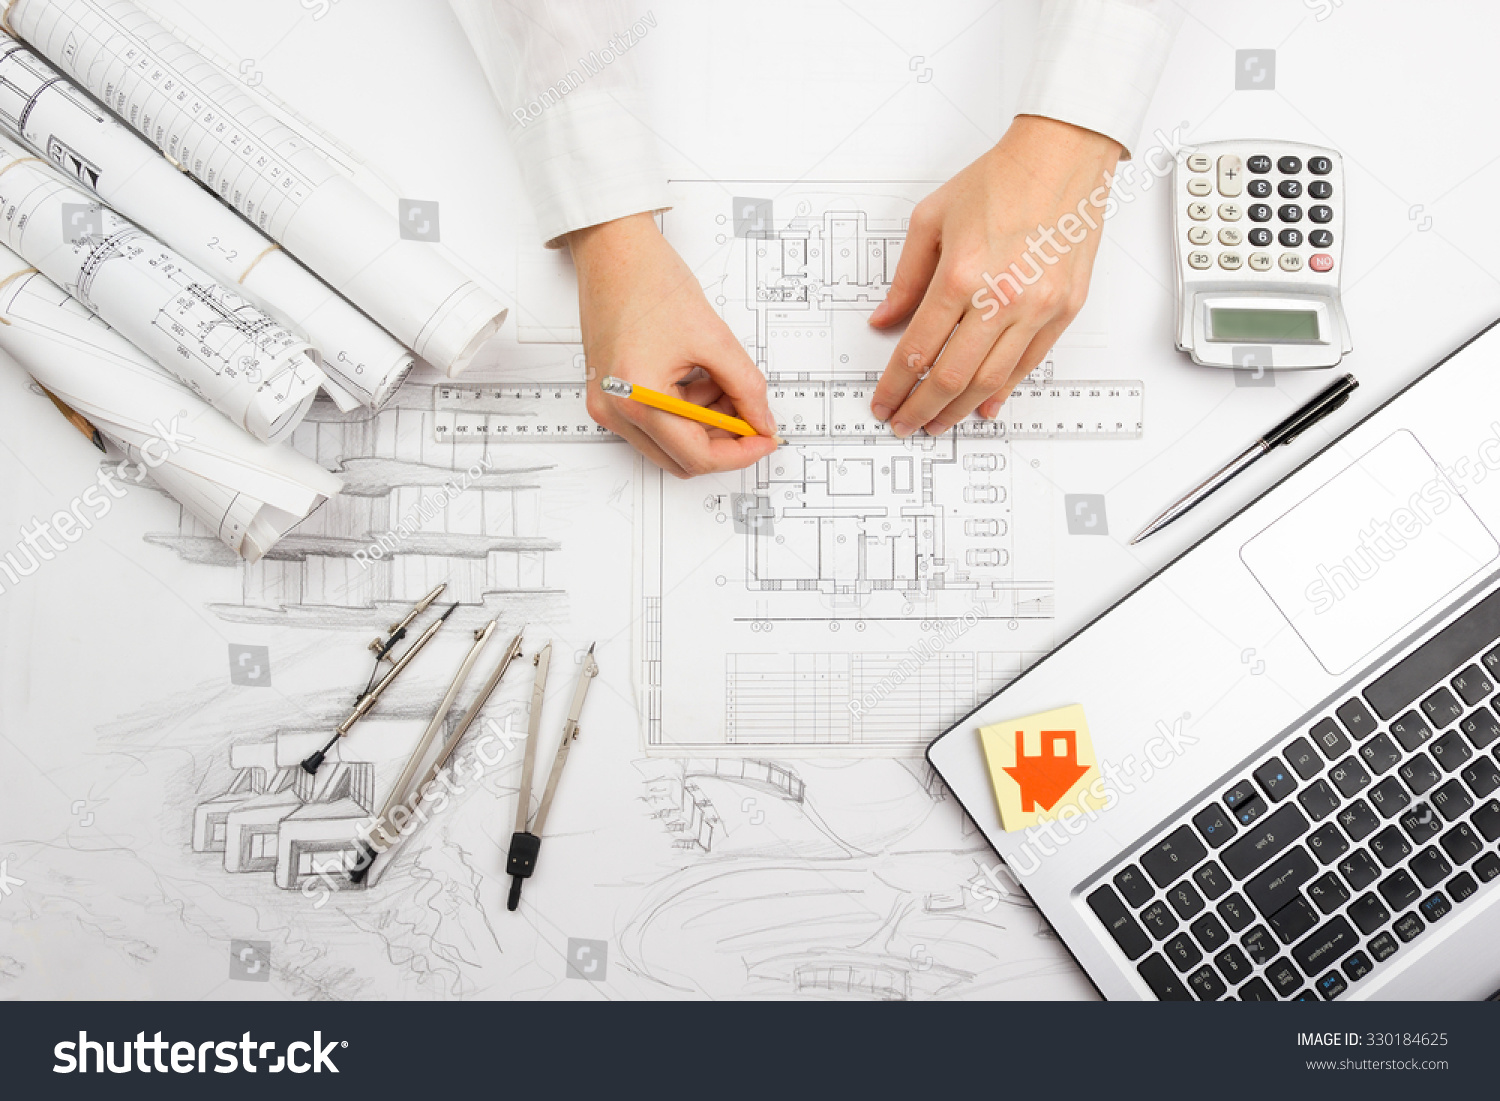 Architect working on blueprint architects workplace imagen de architect working on blueprint architects workplace architectural project blueprints ruler calculator malvernweather